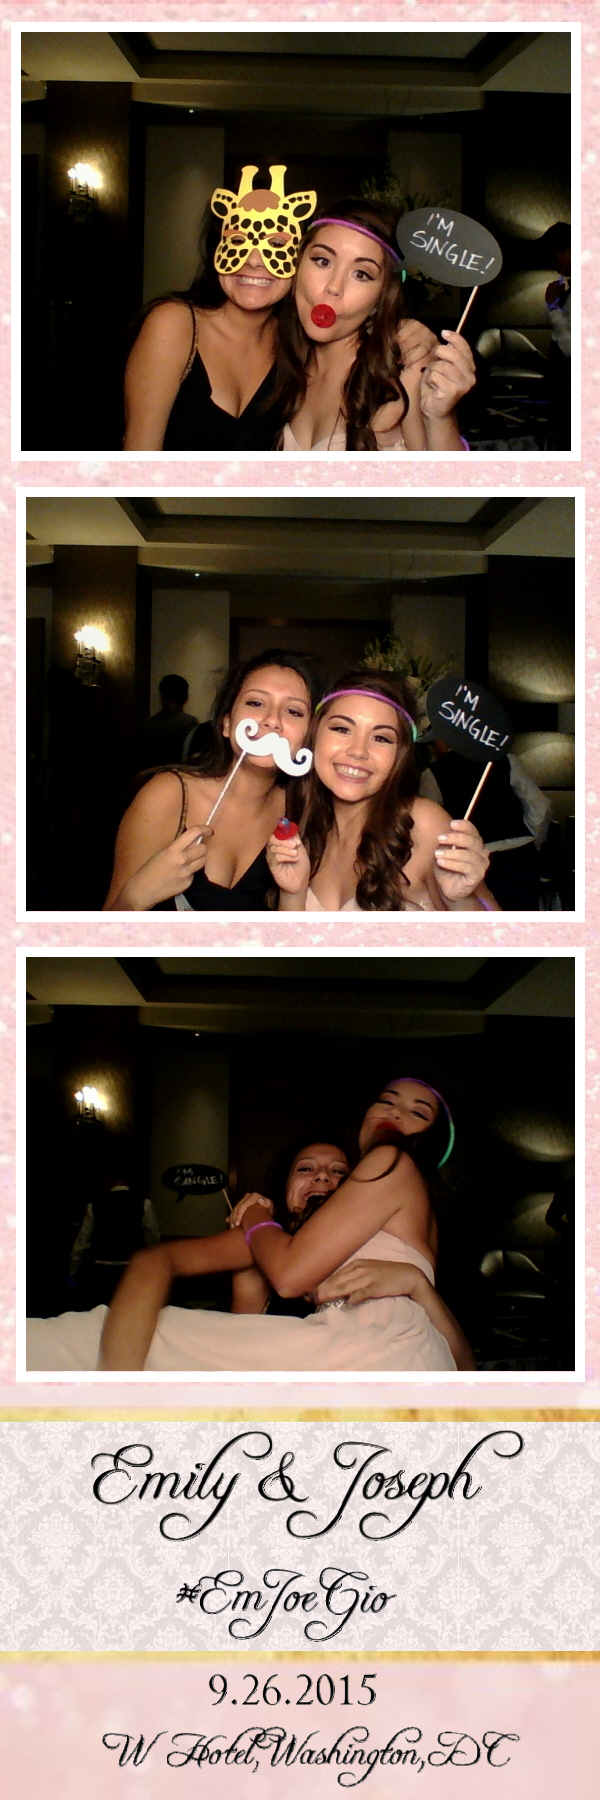 Guest House Events Photo Booth E&J (28).jpg